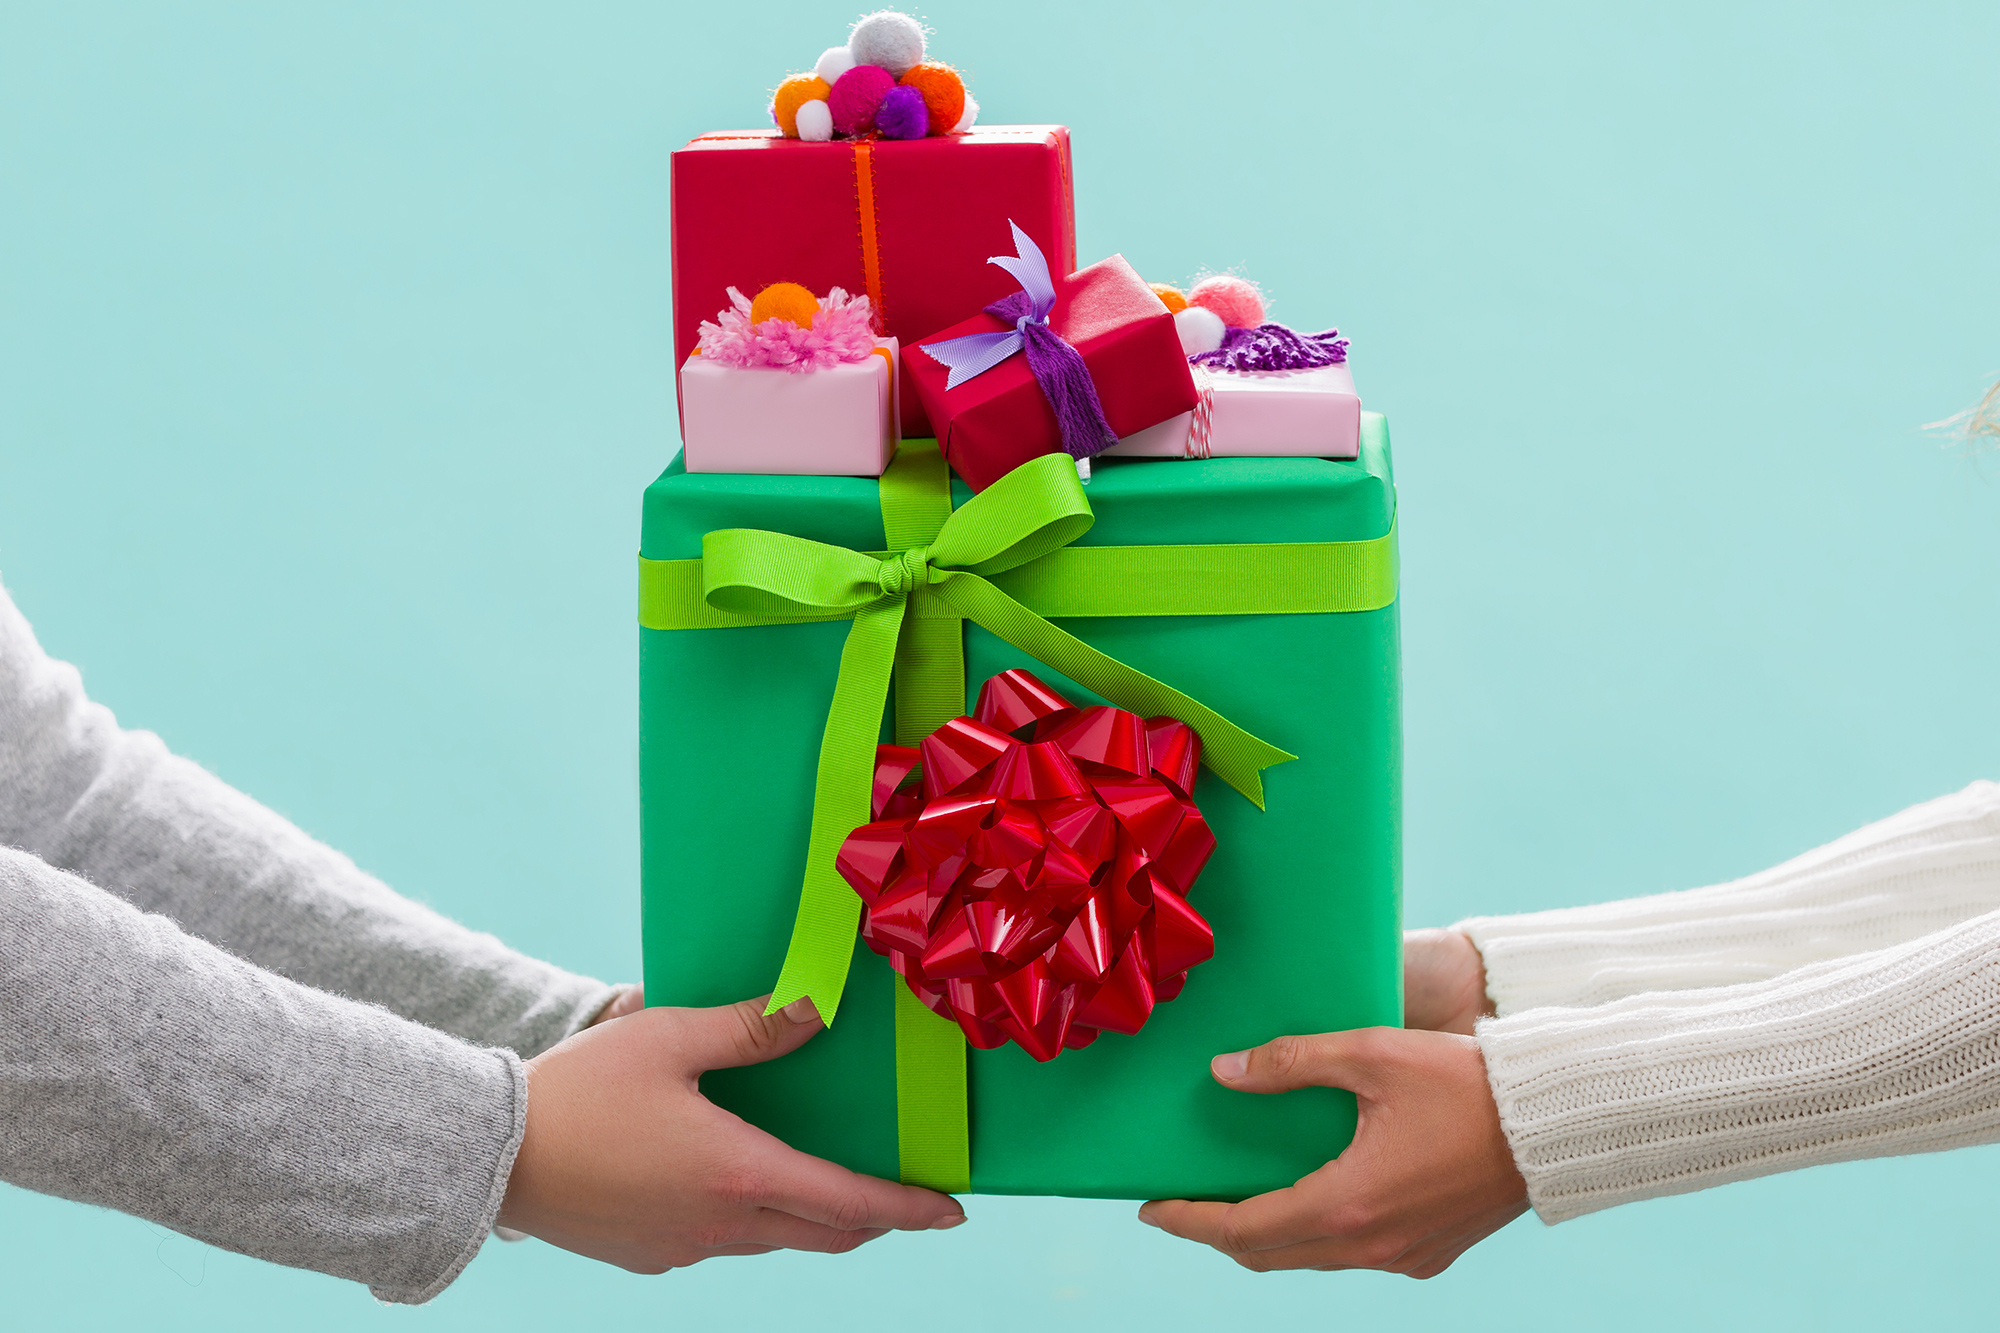 Photo of two women exchanging pile of gifts